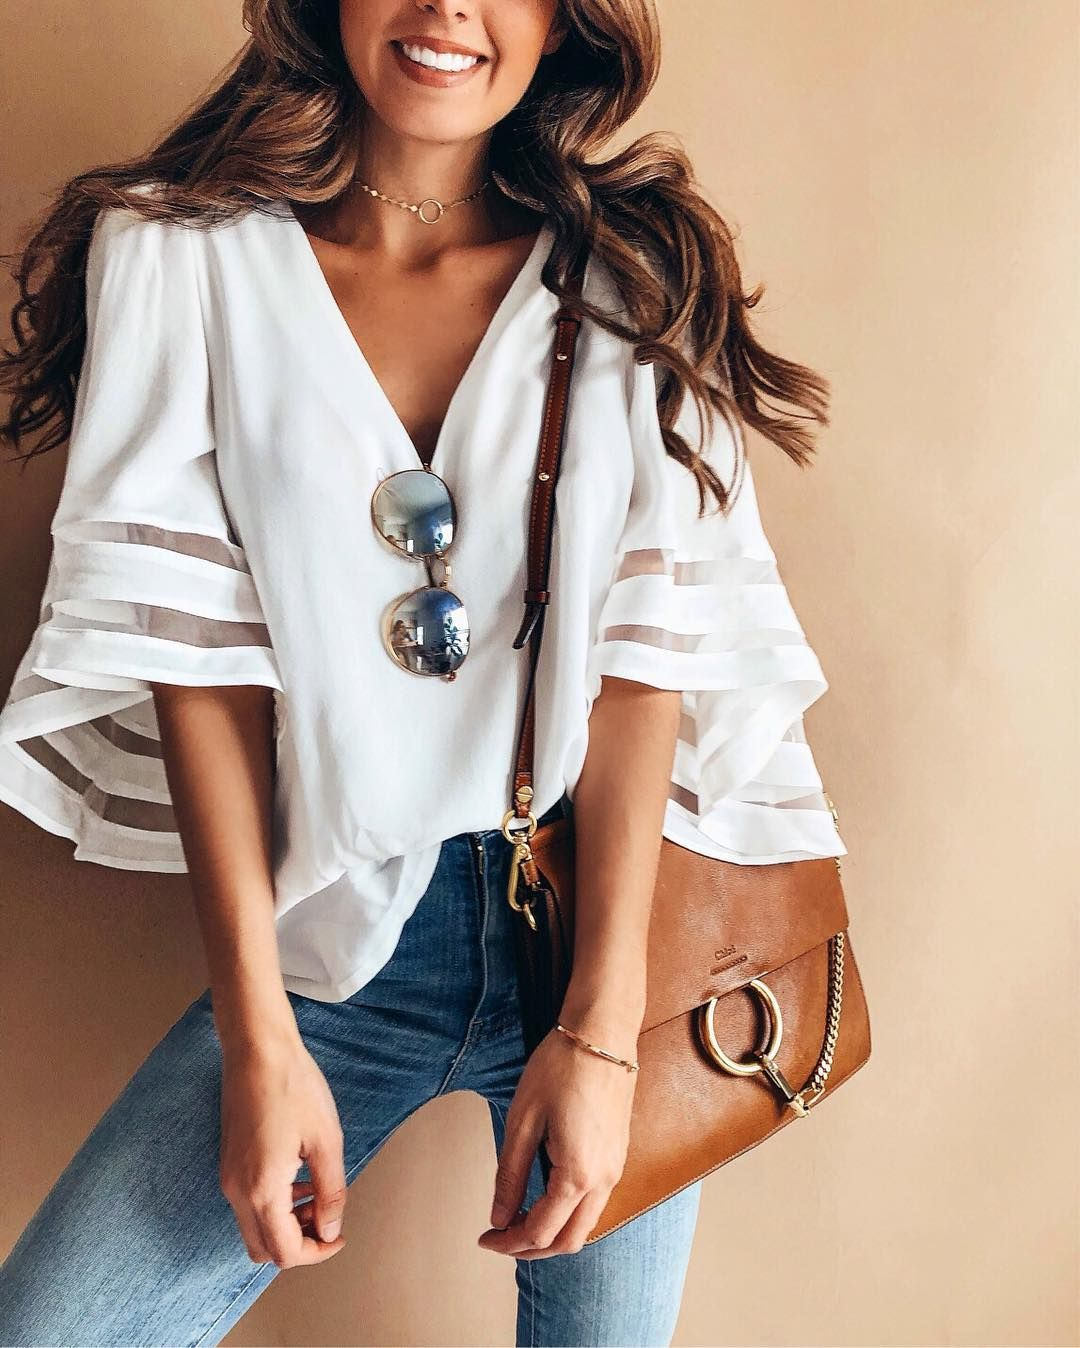 Pin By Kacie Larsen On Clothes In 2018 Pinterest Fashion